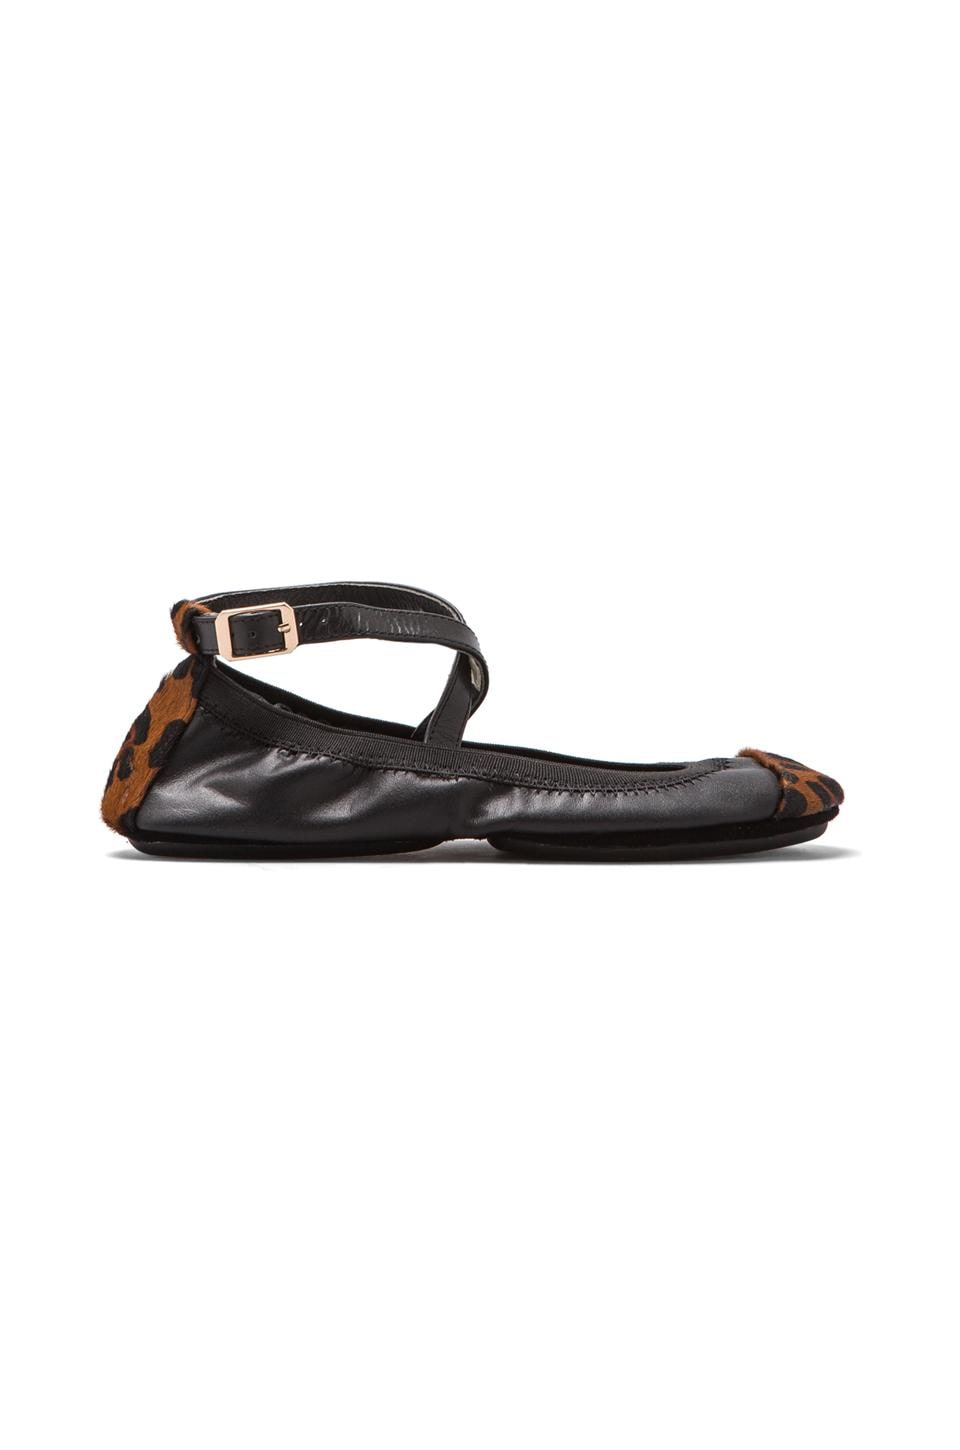 Yosi Samra Two Tone Flat with Calf Hair in Black/Dark Leopard